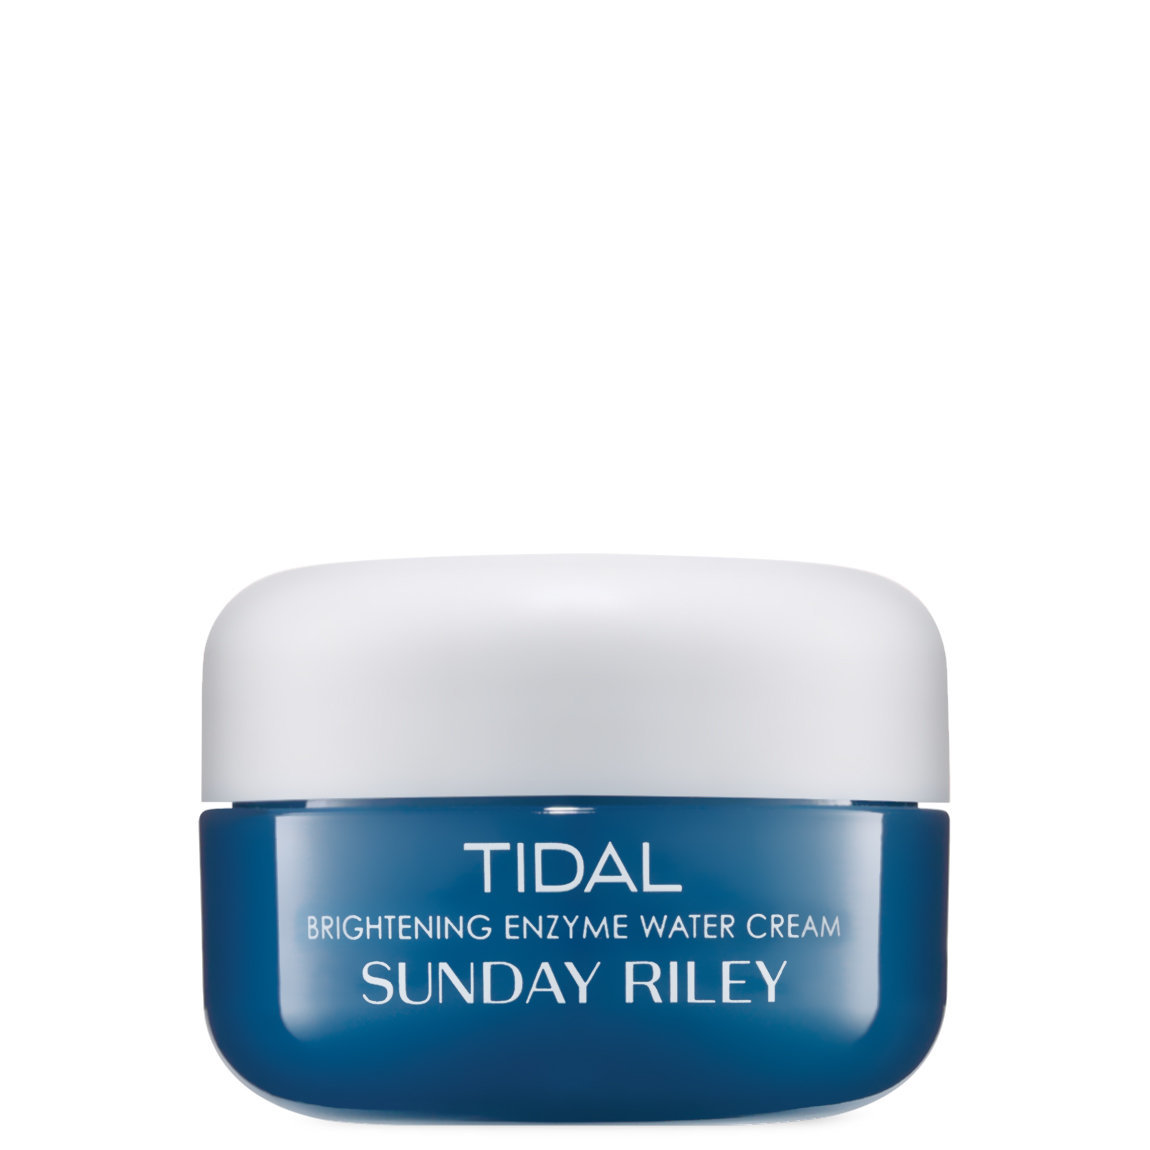 Sunday Riley Tidal Brightening Enzyme Water Cream 0.5 oz alternative view 1 - product swatch.